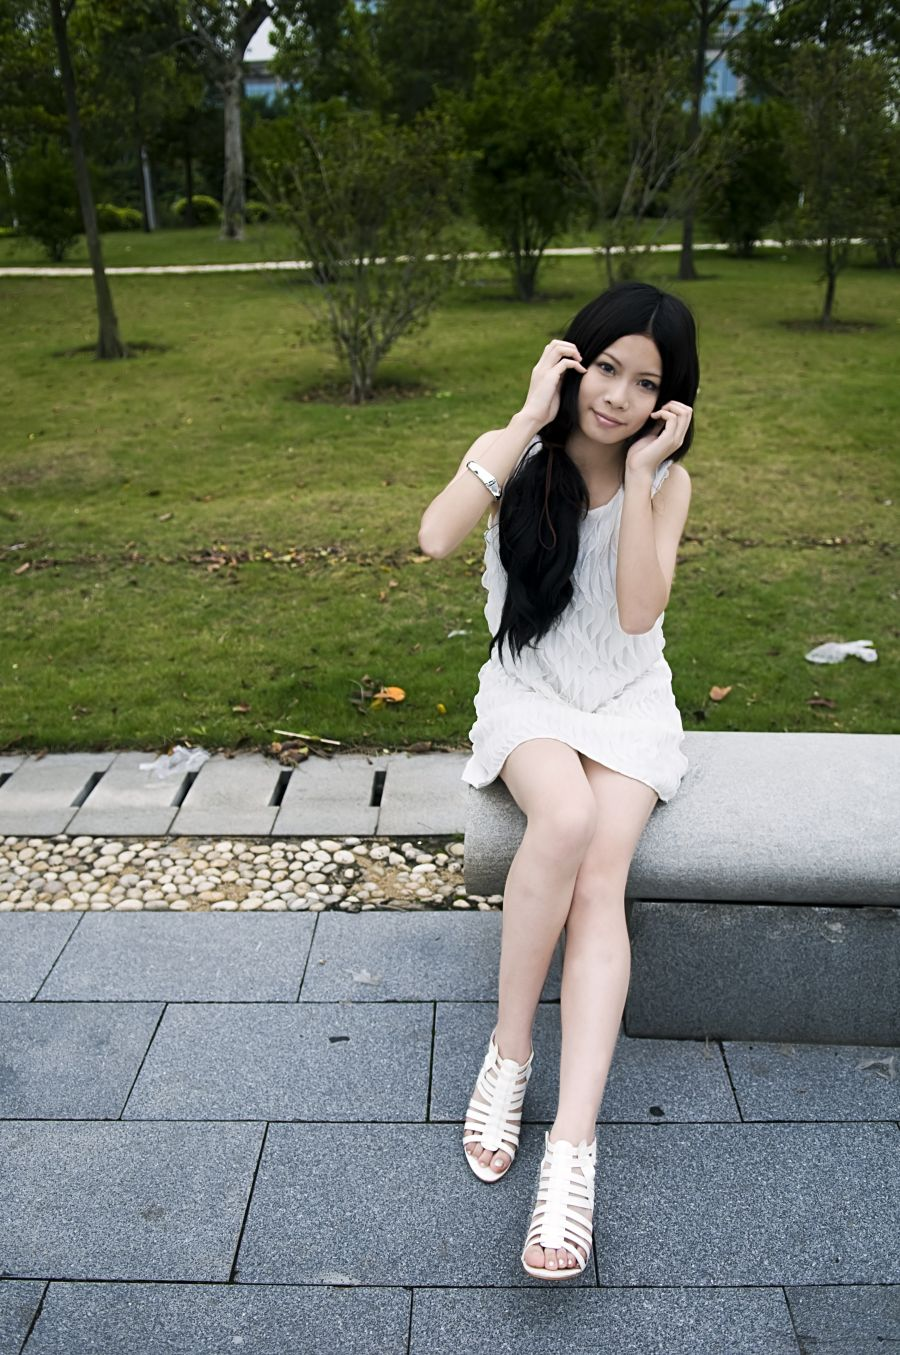 Free Photos A Beautiful Chinese Girl Posing On A Bench -5221